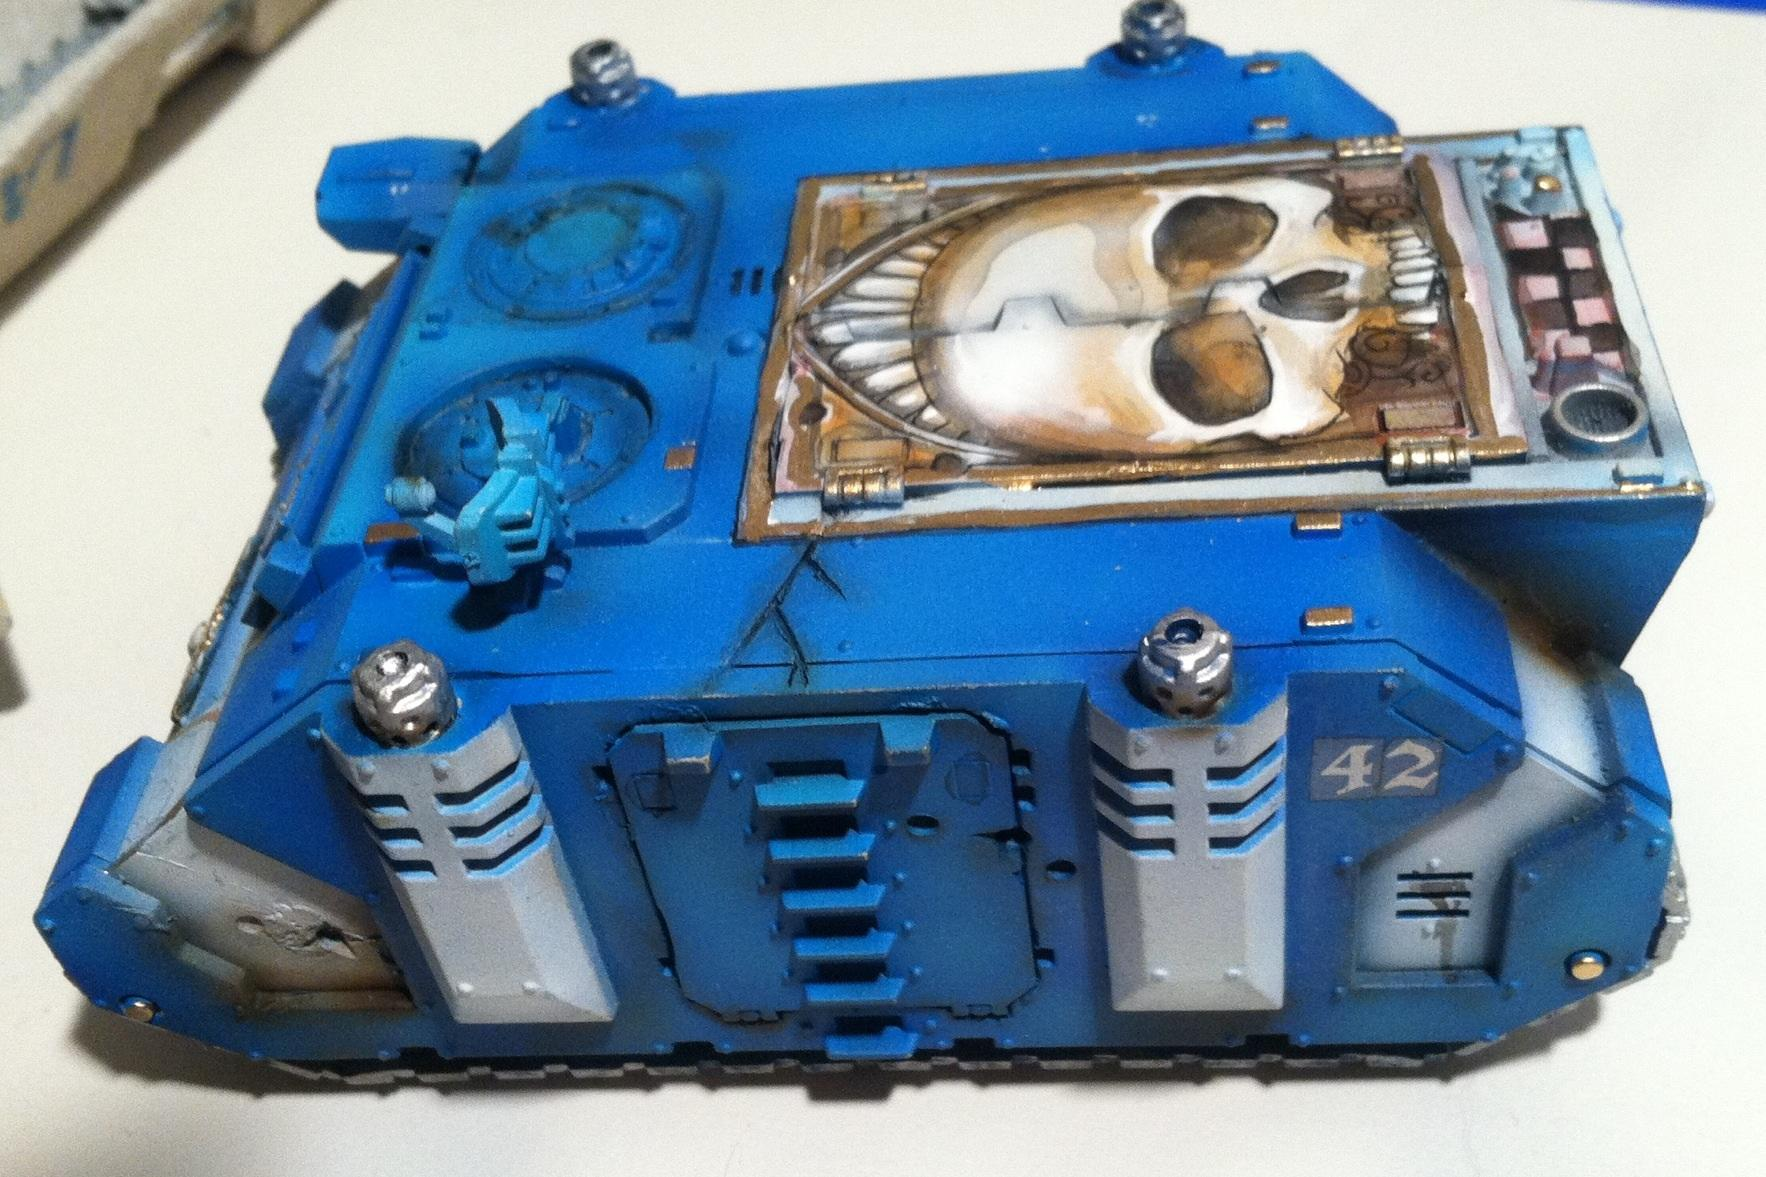 Airbrushed, Mural, Space Marines, Tank, Ultra Marines